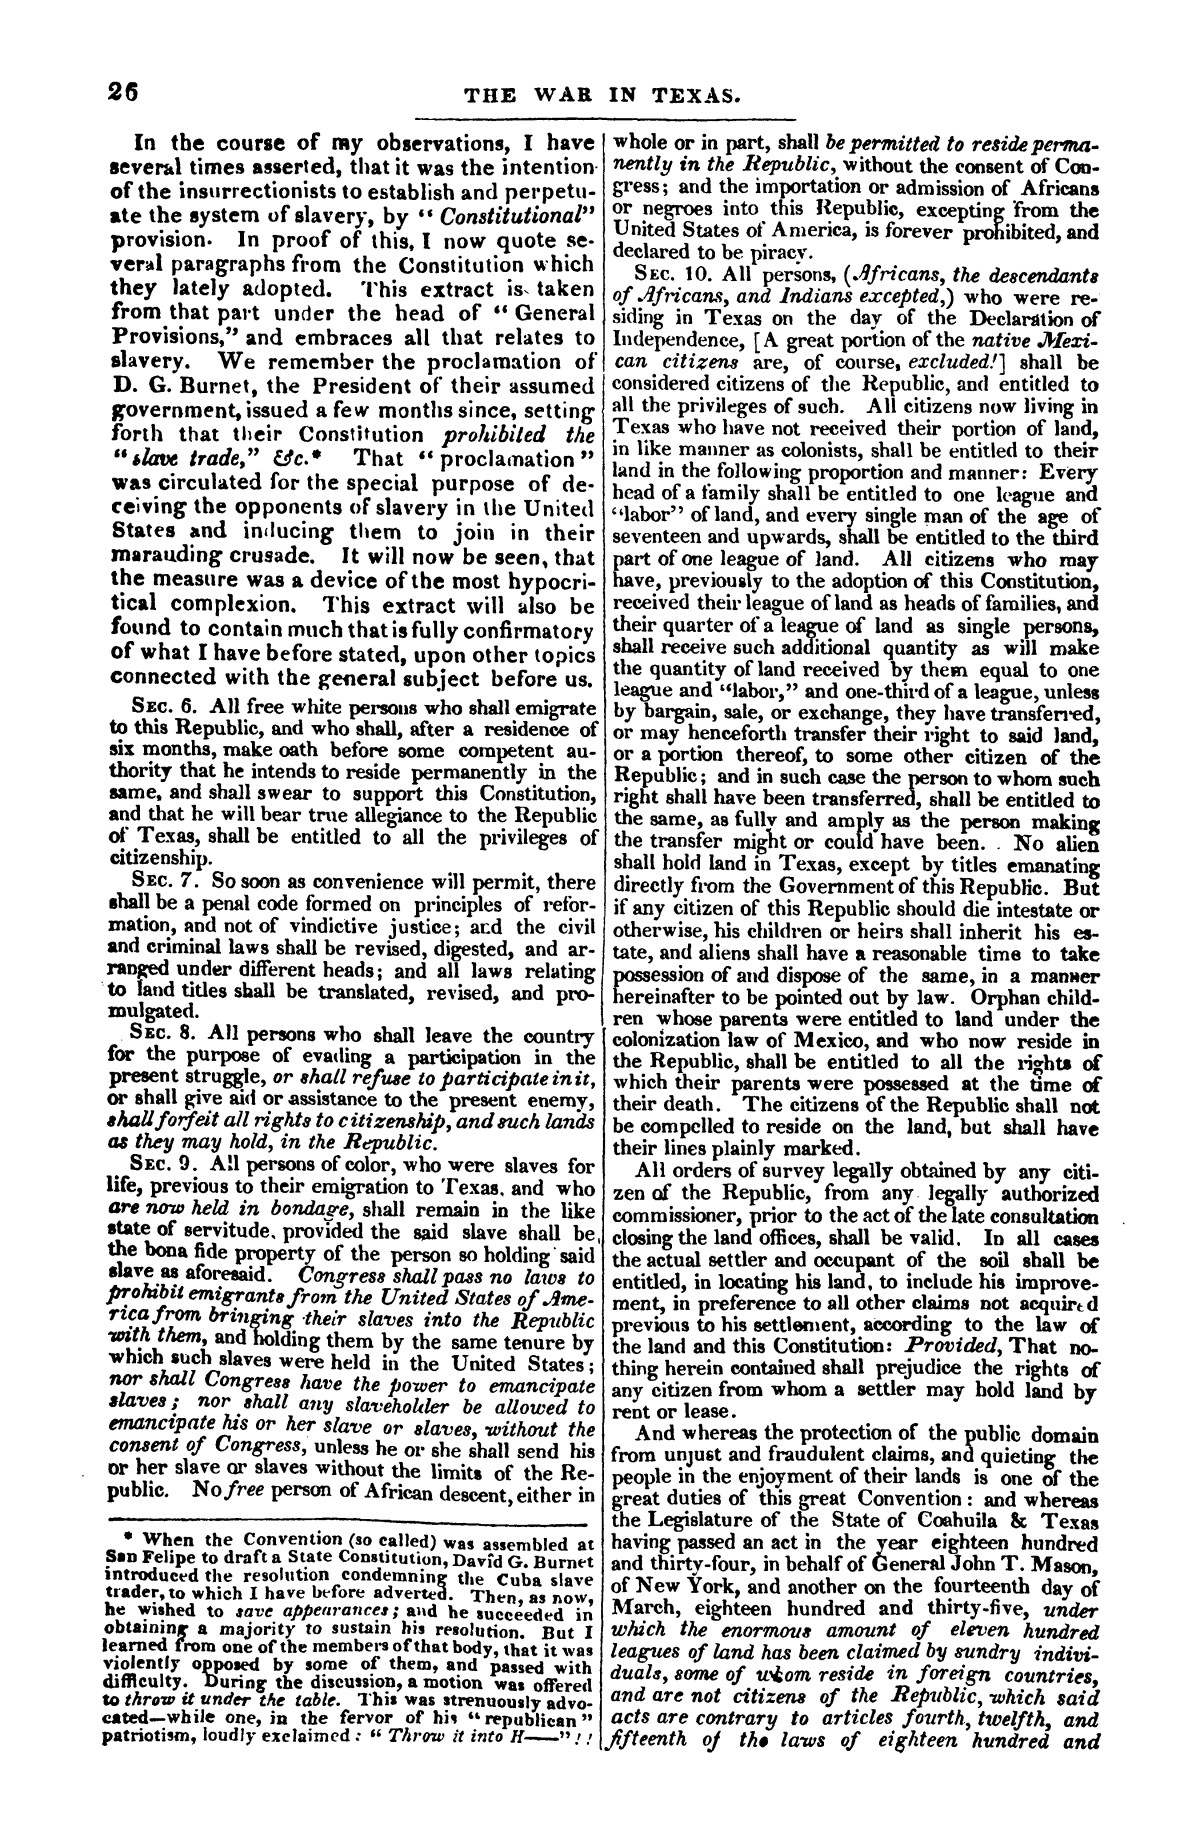 The war in Texas; a review of facts and circumstances, showing that this contest is a crusade against Mexico, set on foot by slaveholders, land speculators, & c. in order to re-establish, extend, and perpetuate the system of slavery and the slave trade.                                                                                                      [Sequence #]: 26 of 64